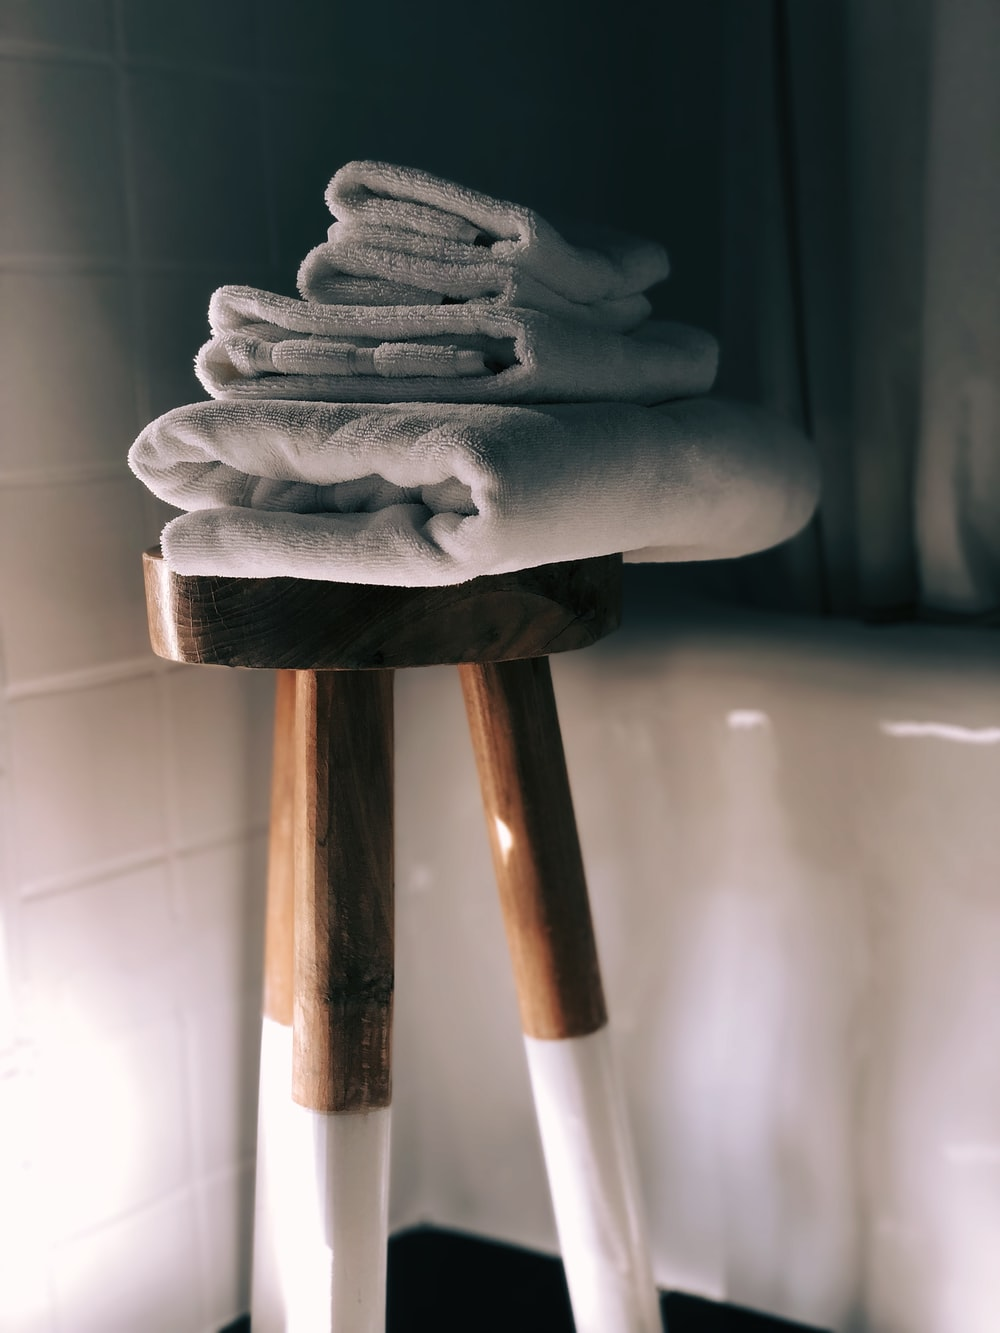 white towels on brown wooden stool